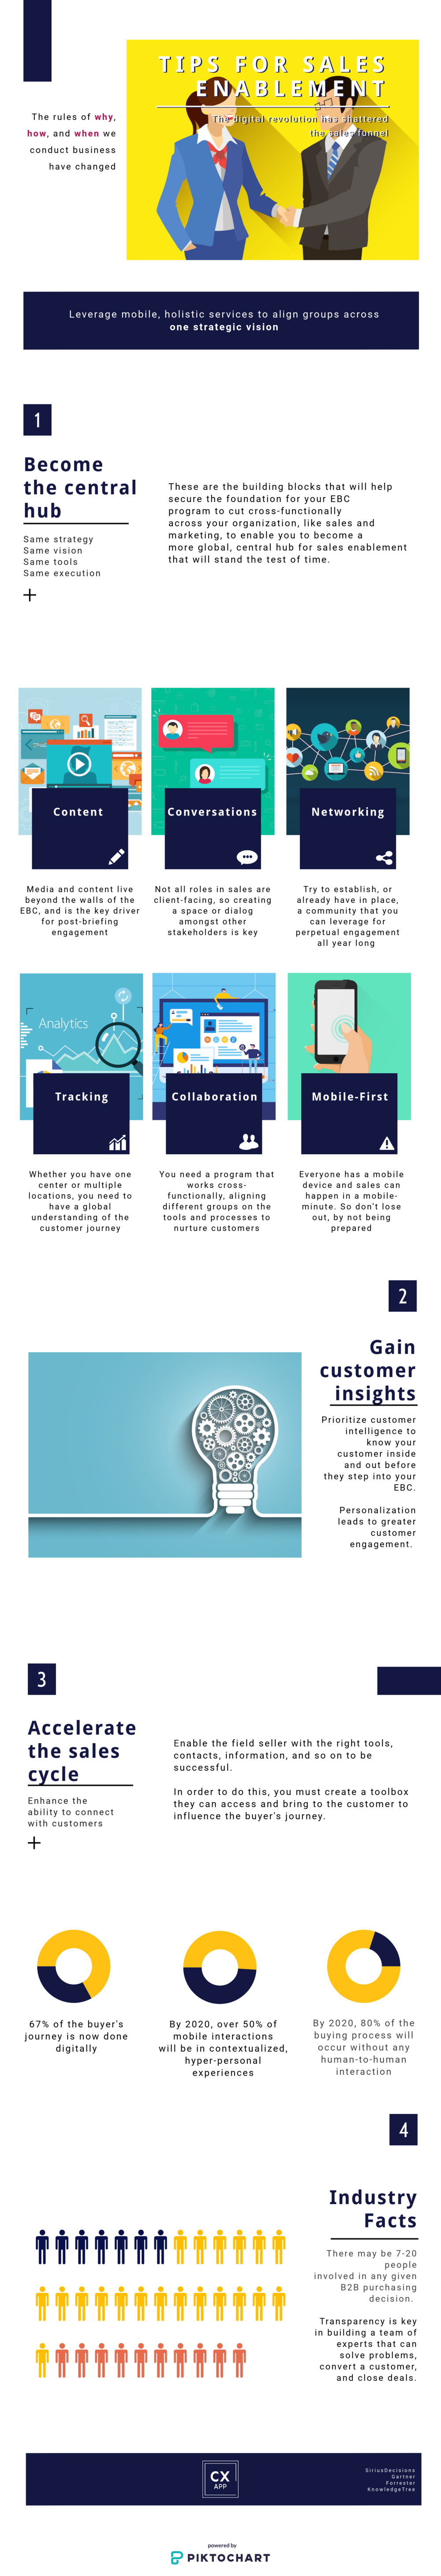 salesenablement_29893942 (1).png